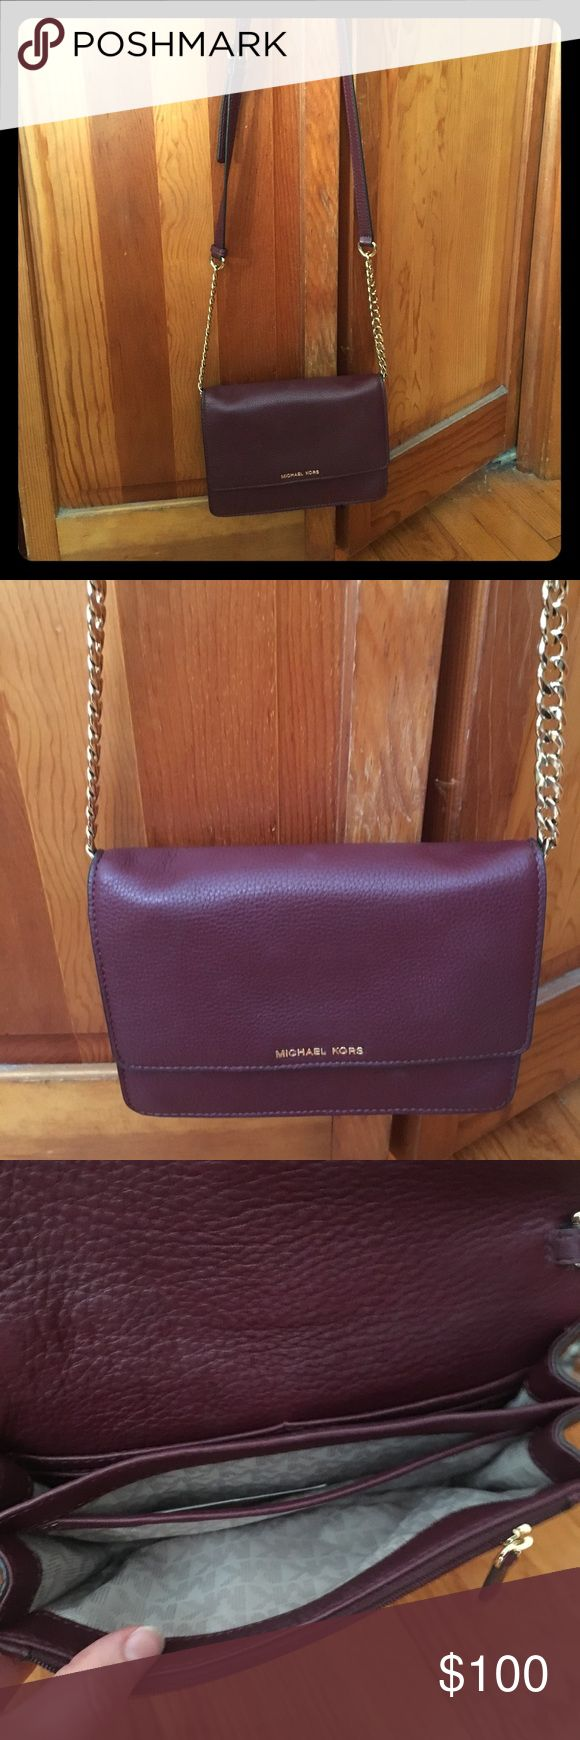 Micheal Kors crossbody bag A beautiful soft leather crossbody bag, in merlot color, in like new condition! Michael Kors Bags Crossbody Bags